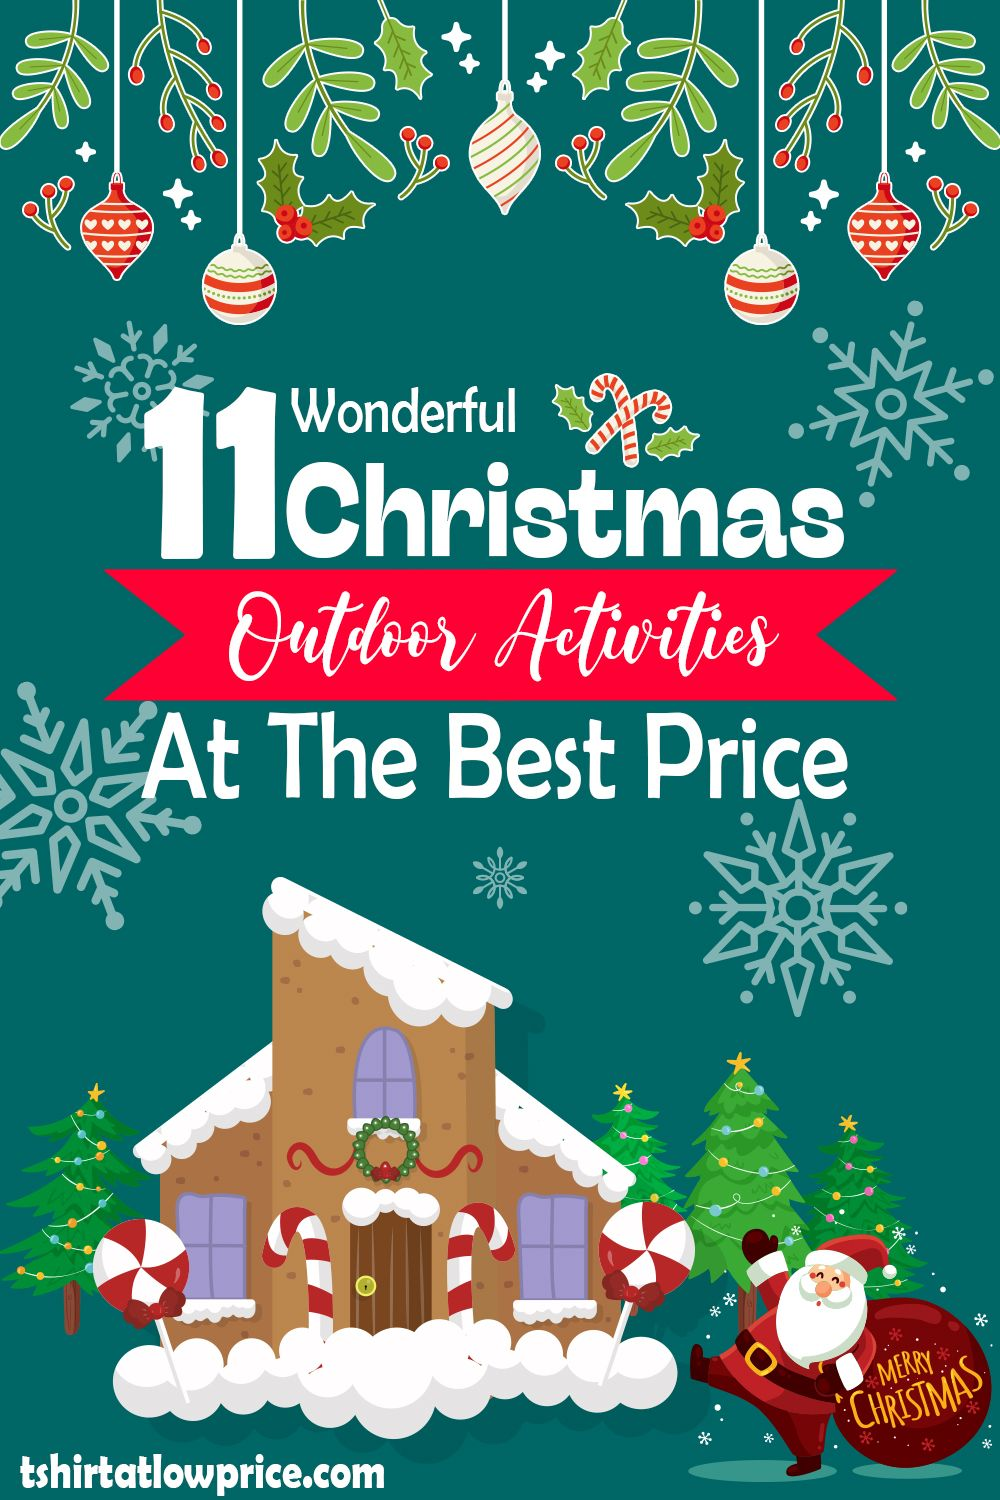 11 Ideas On Christmas Outdoor Activities Saving Money In 2020 Christmas Fun Facts Outdoor Christmas Christmas Gift Guide